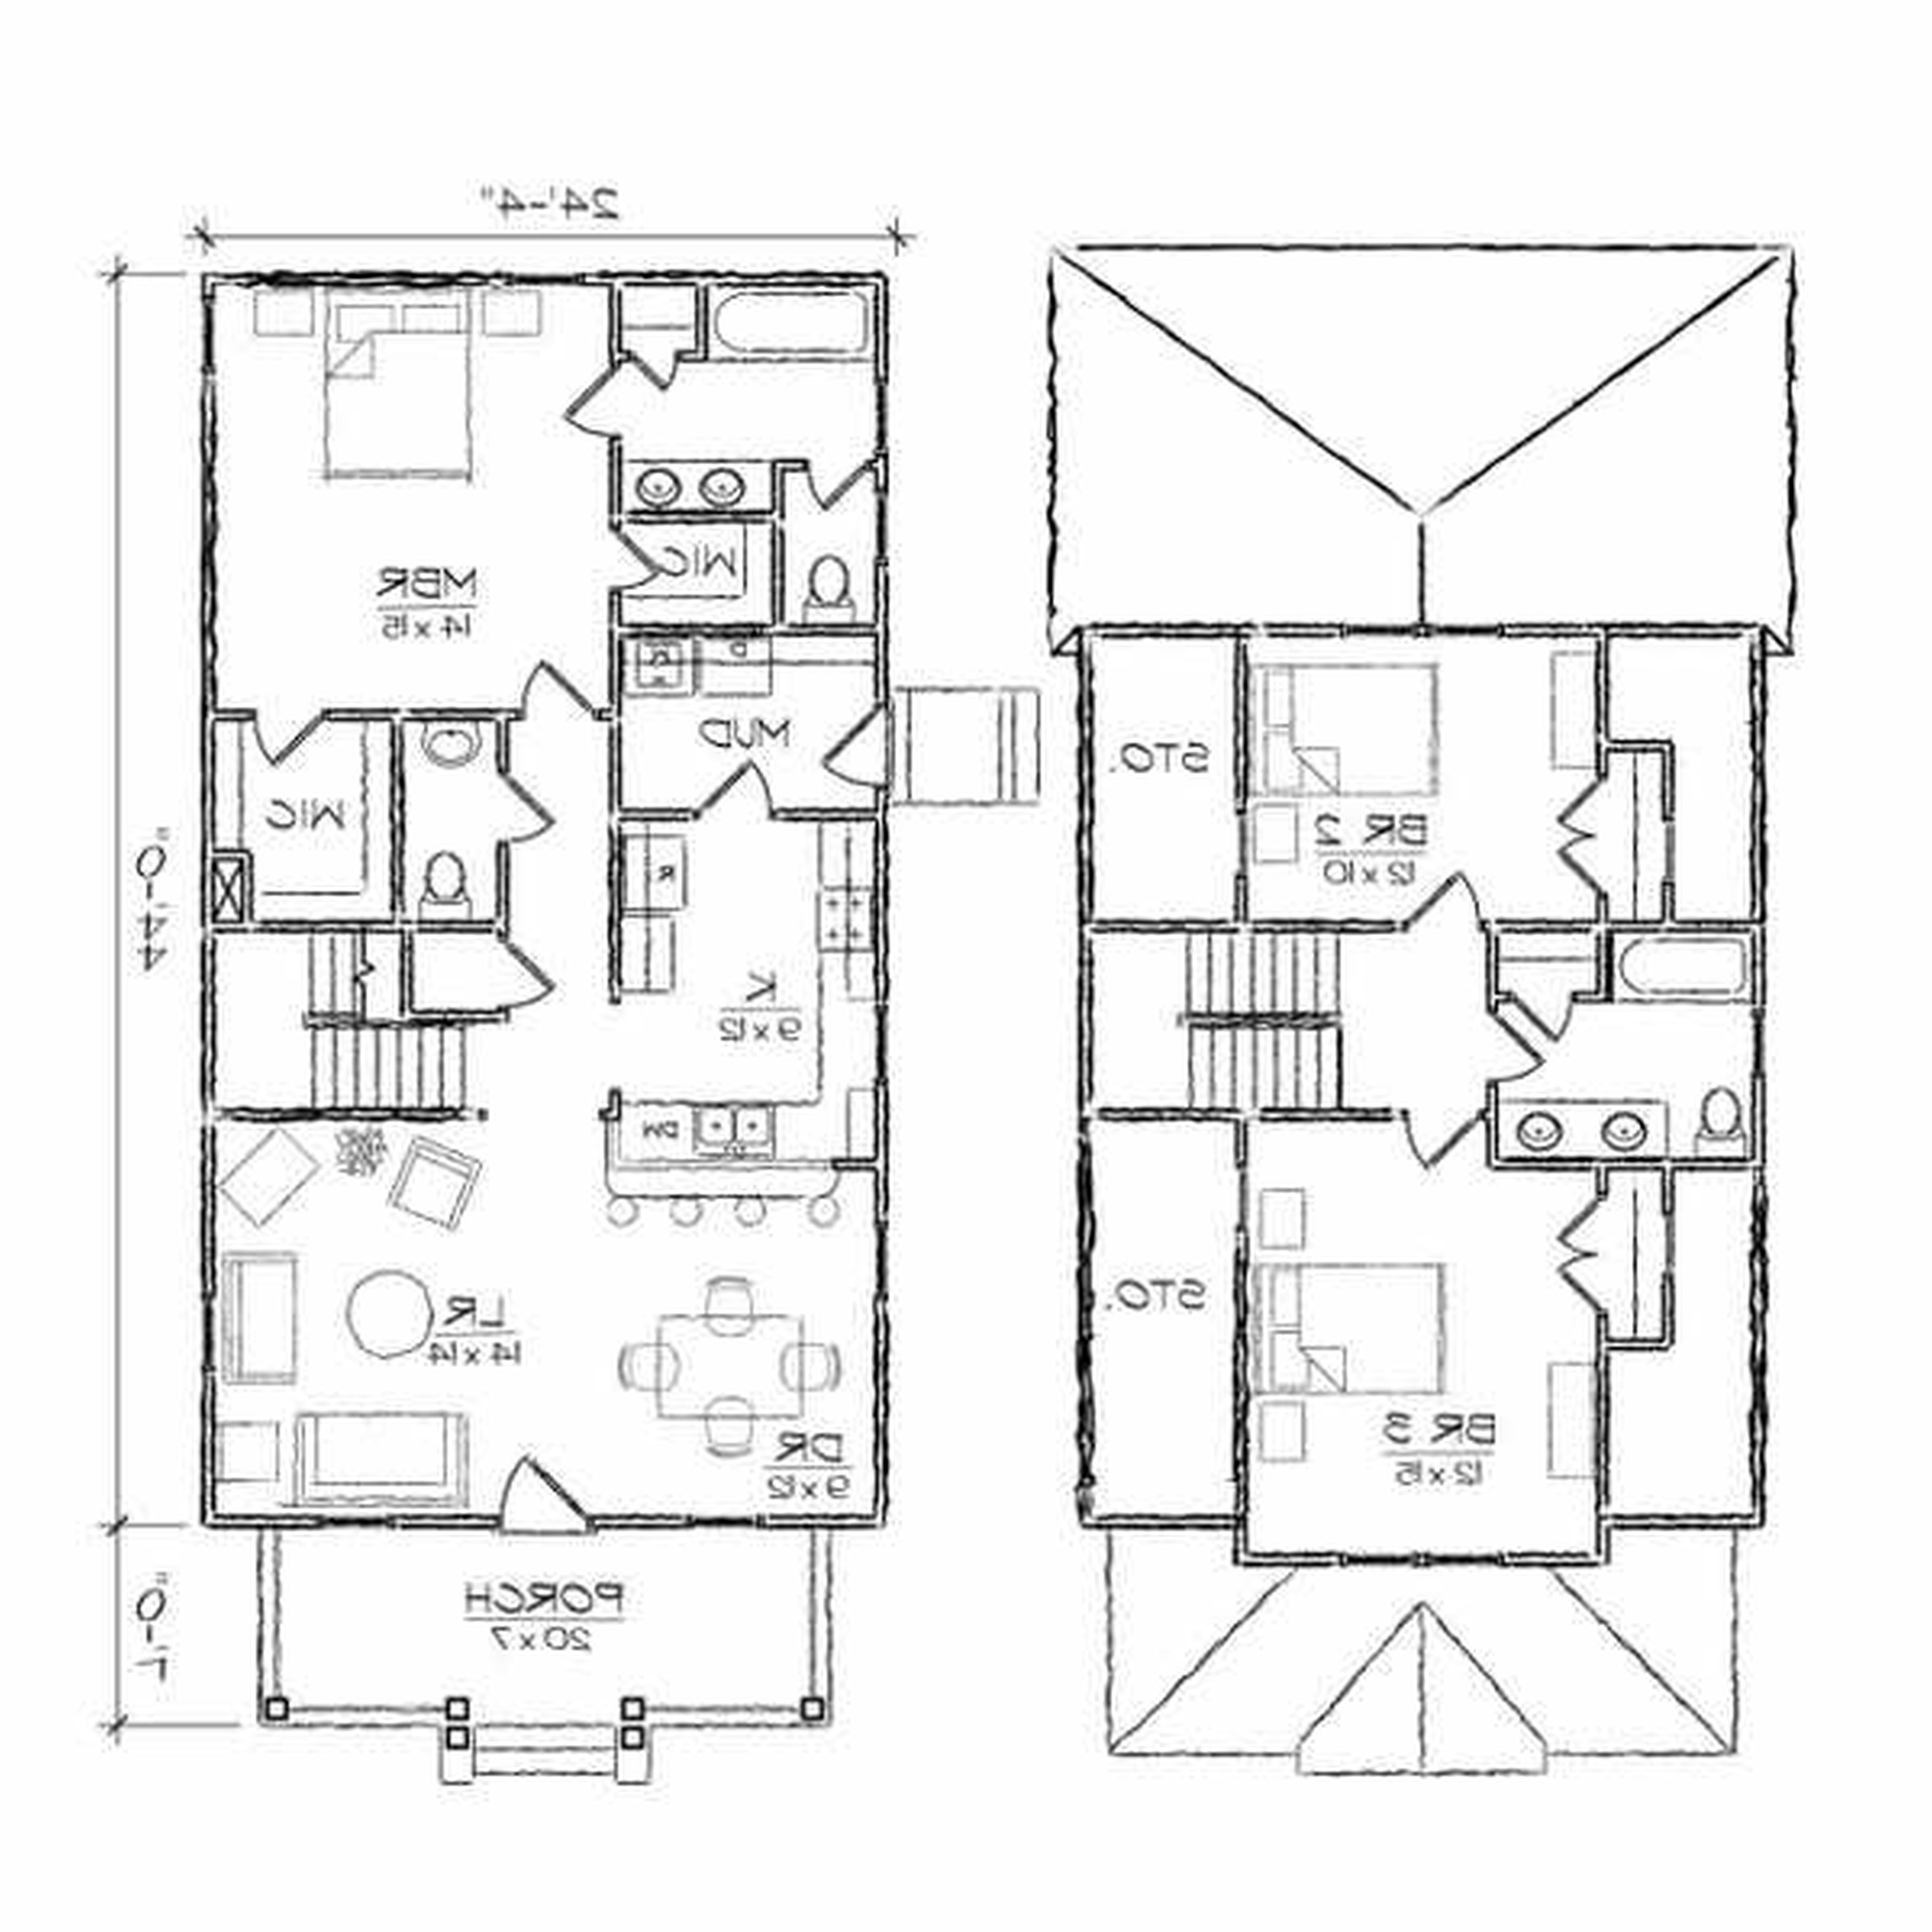 5000x5000 How To Draw House Plans Draw House Floor Plans Online Draw House